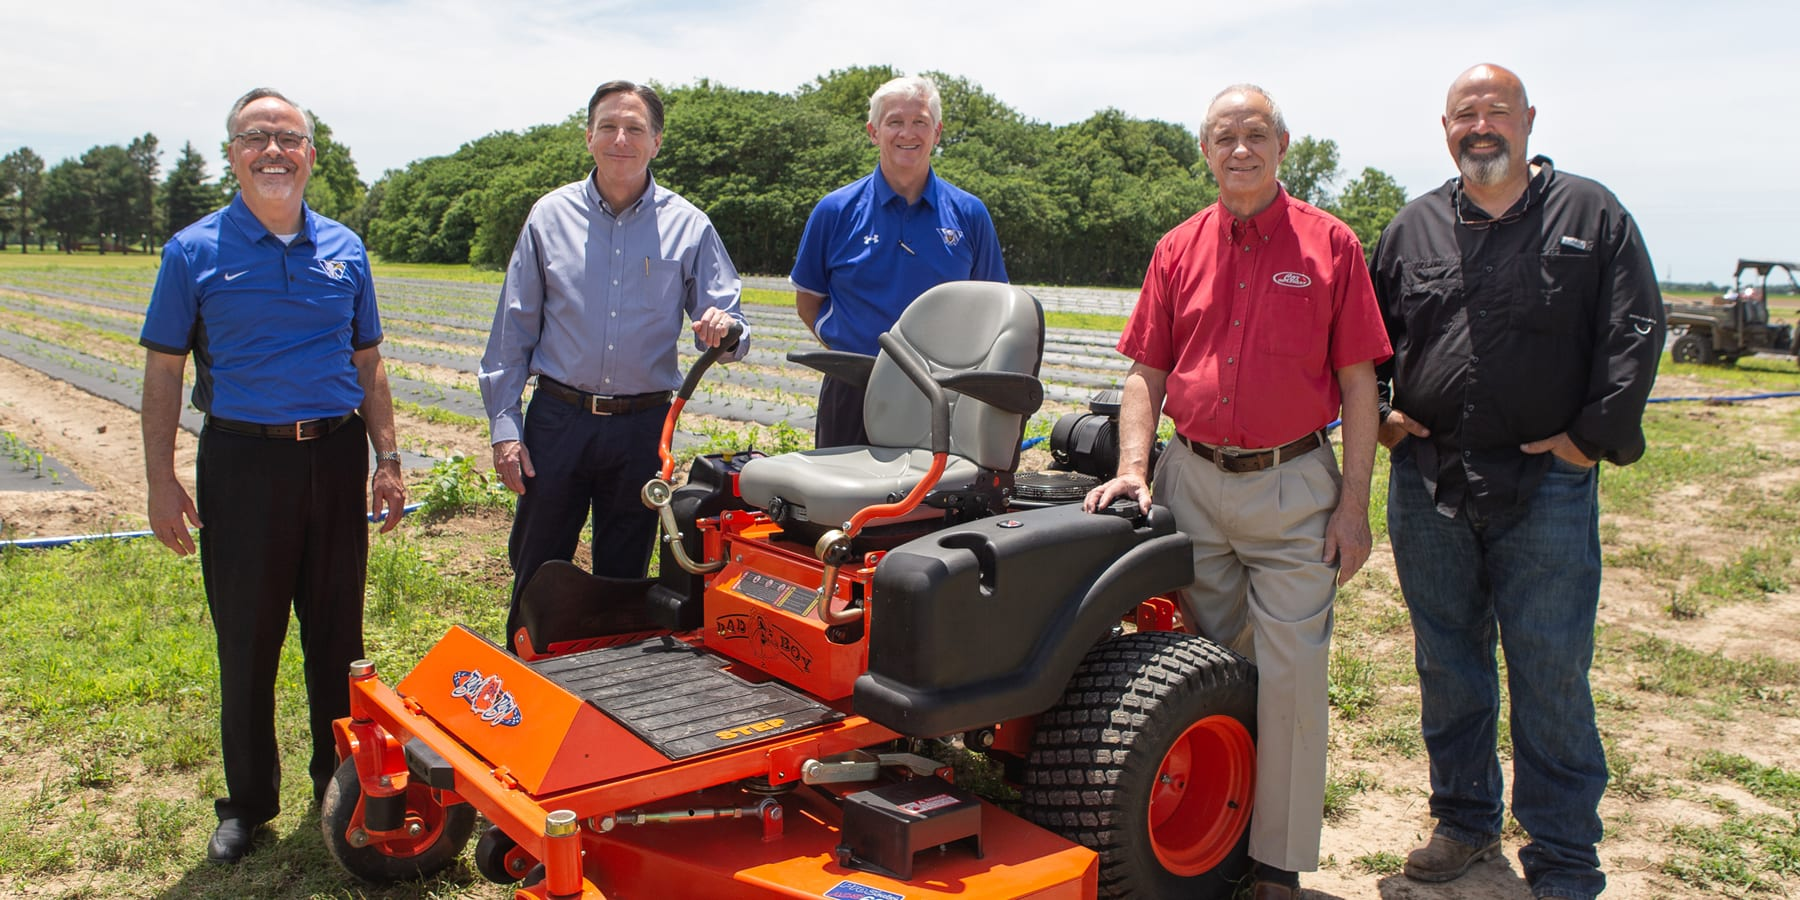 Men pose in field next to large lawnmower